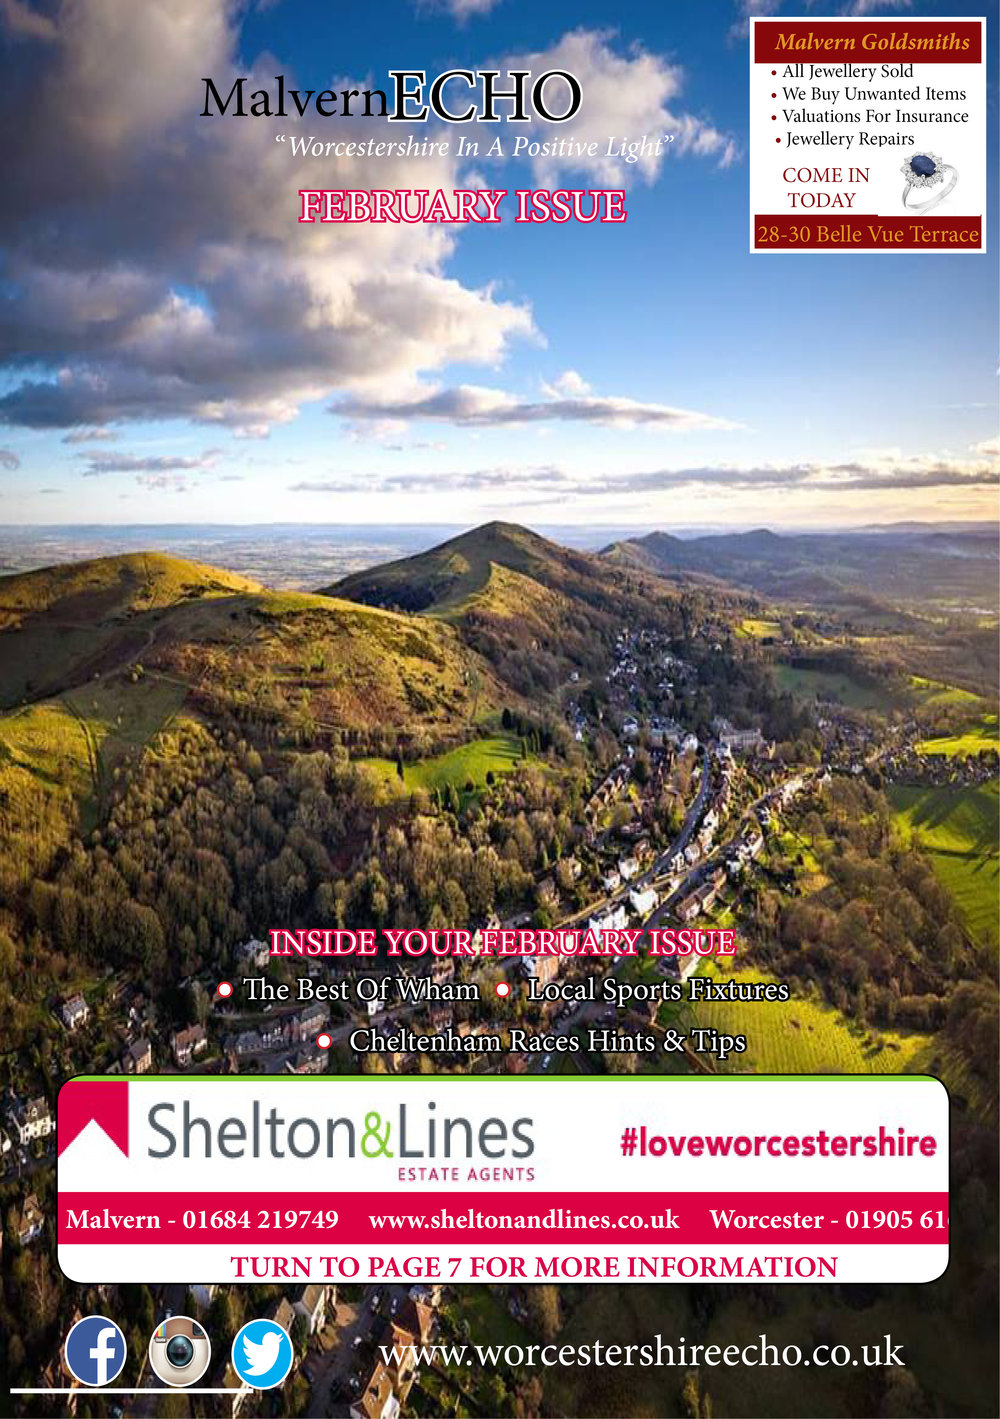 The February Edition - Your New Look Malvern Echo is now out! Look our for it in your City Centre and Selected Estates in Malvern and the Surrounding Areas.